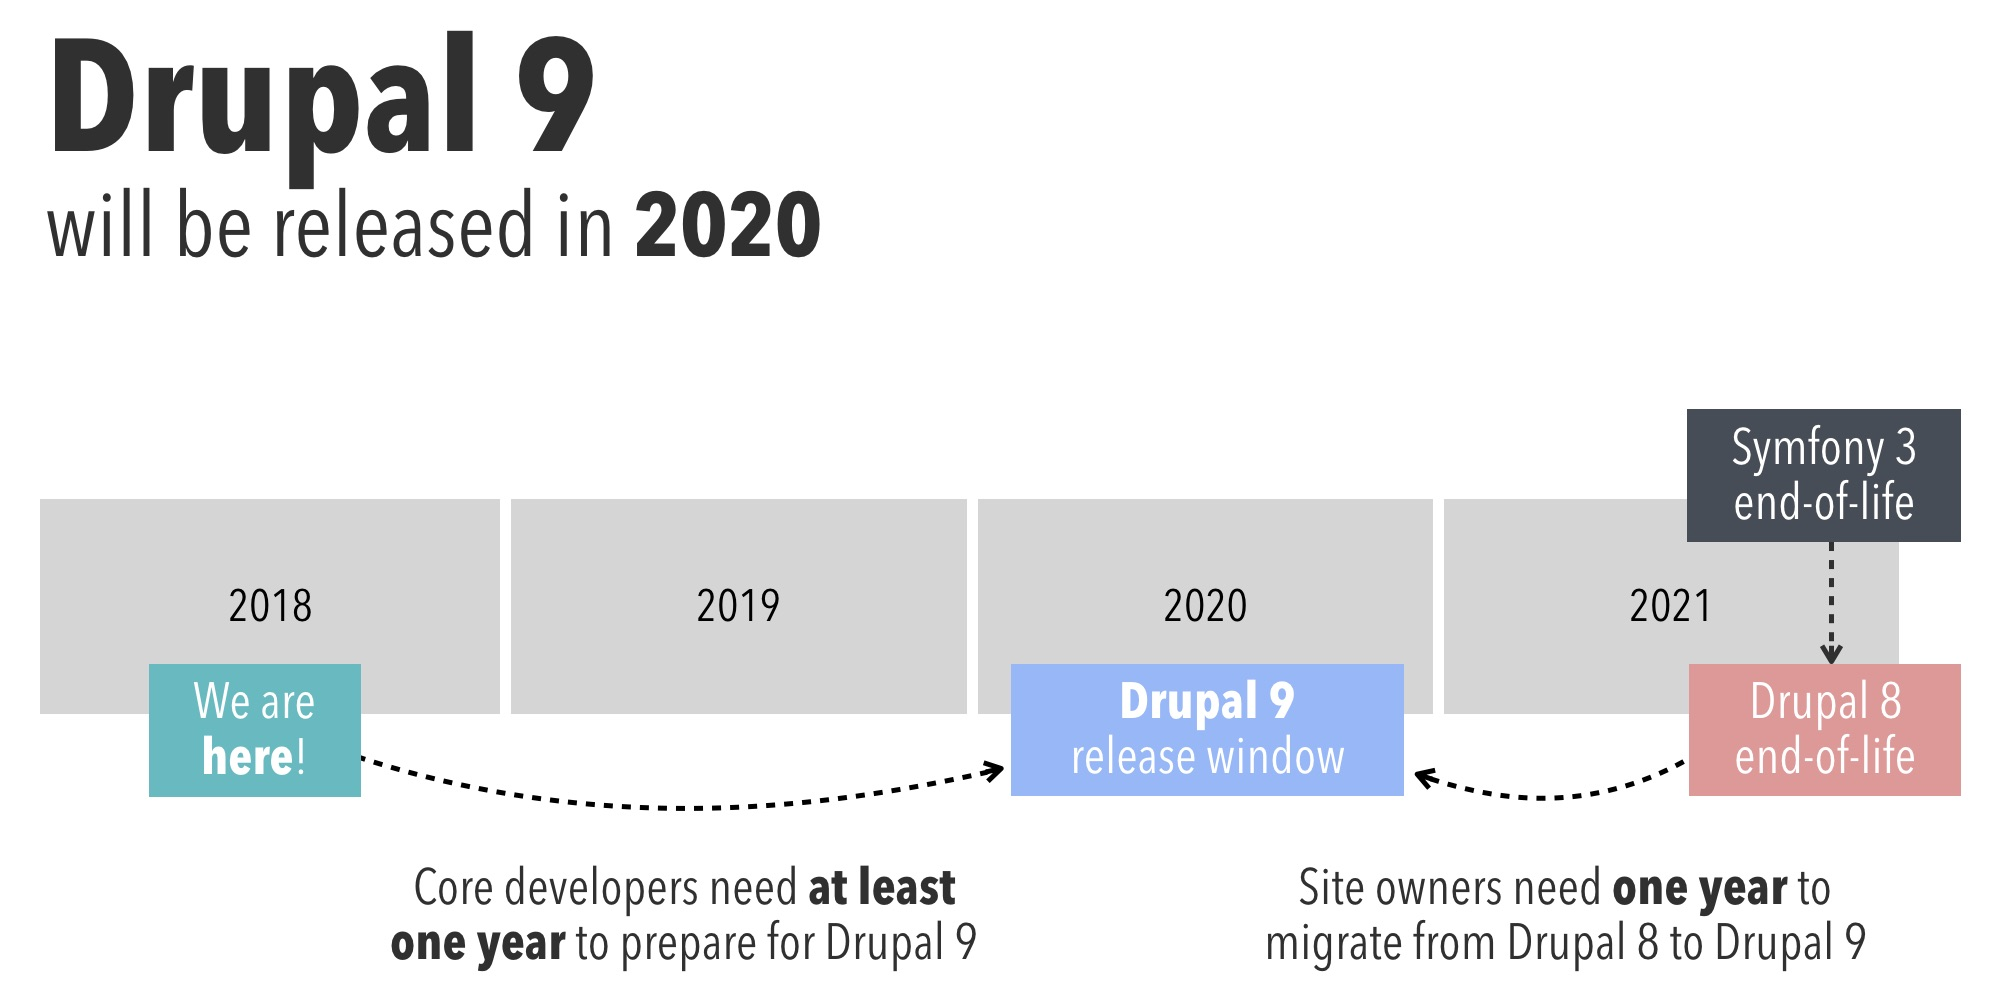 An image that shows that Drupal 9 will be released in 2020